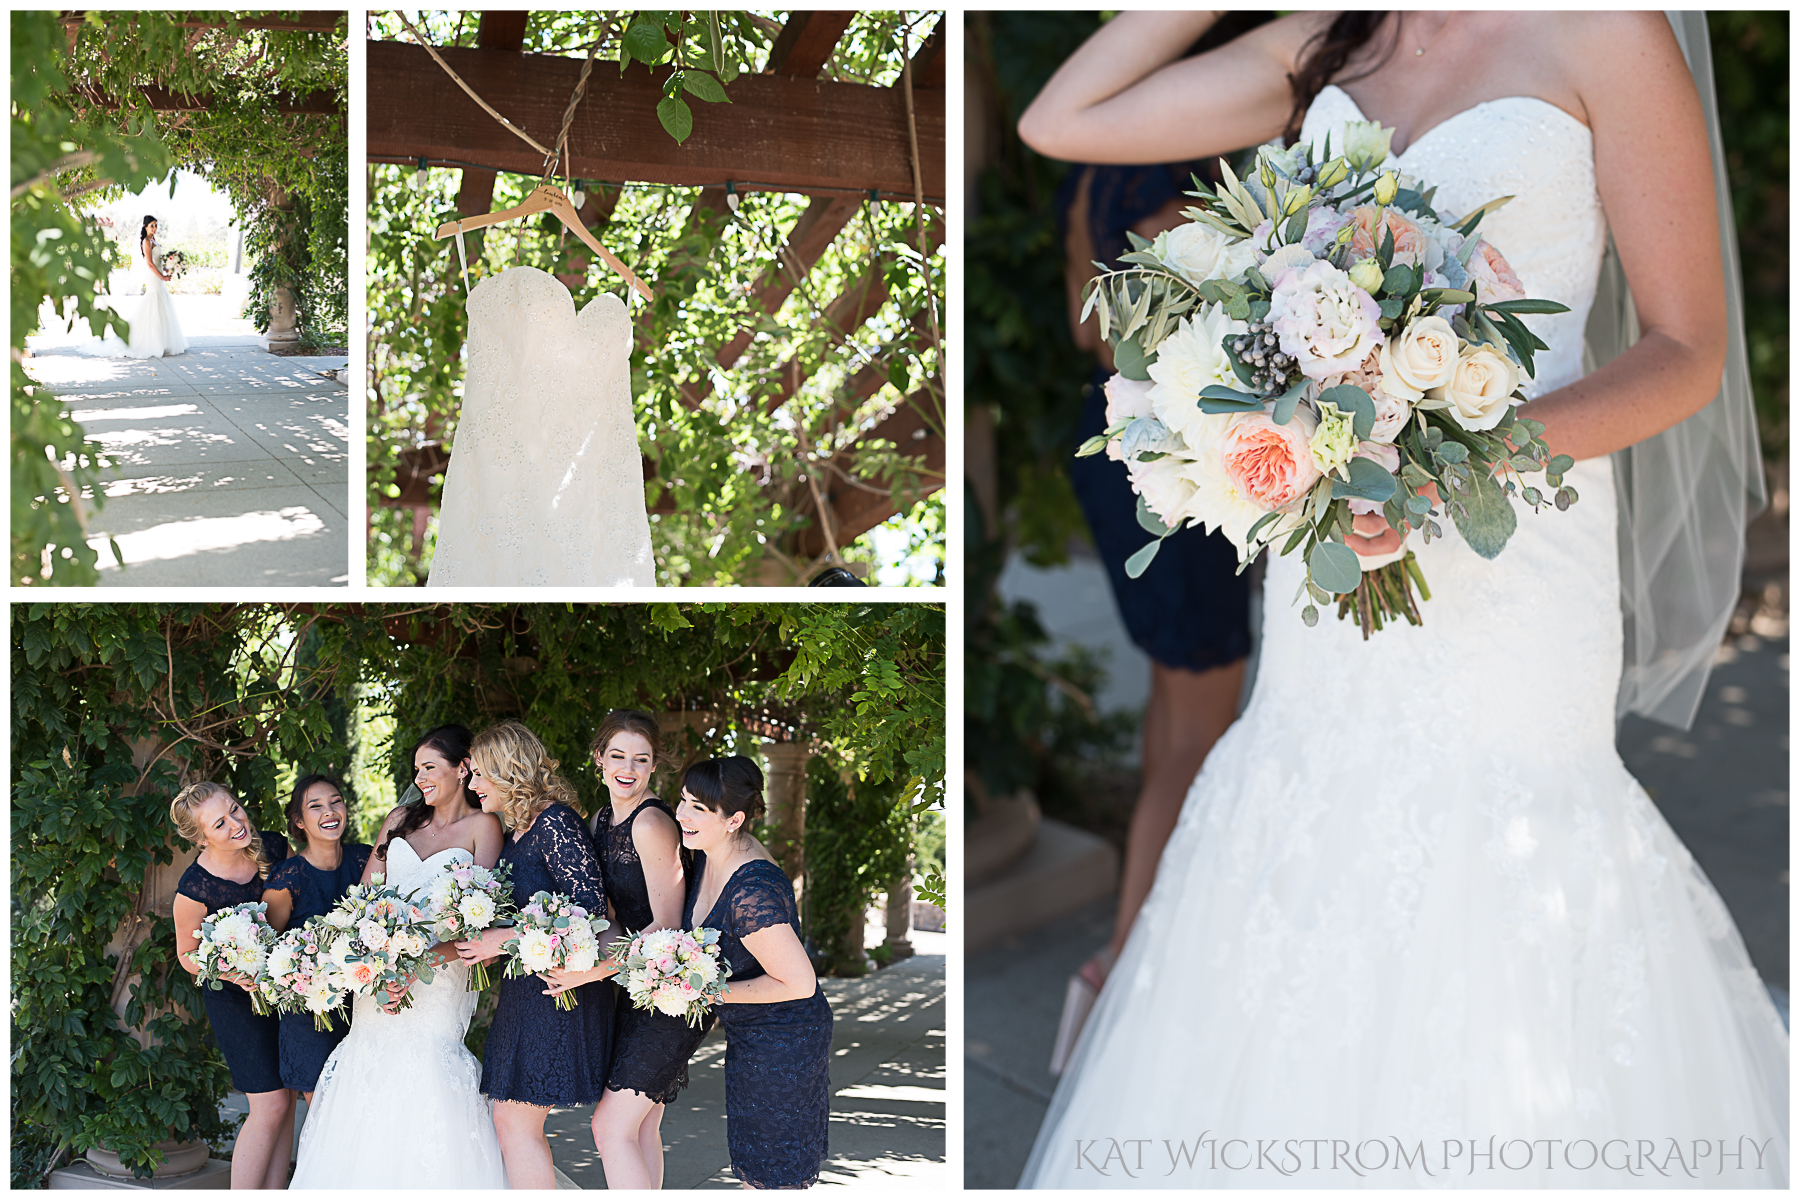 The bridesmaid ladies were told to pick out a navy lace dress, and each of them looked absolutely gorgeous!